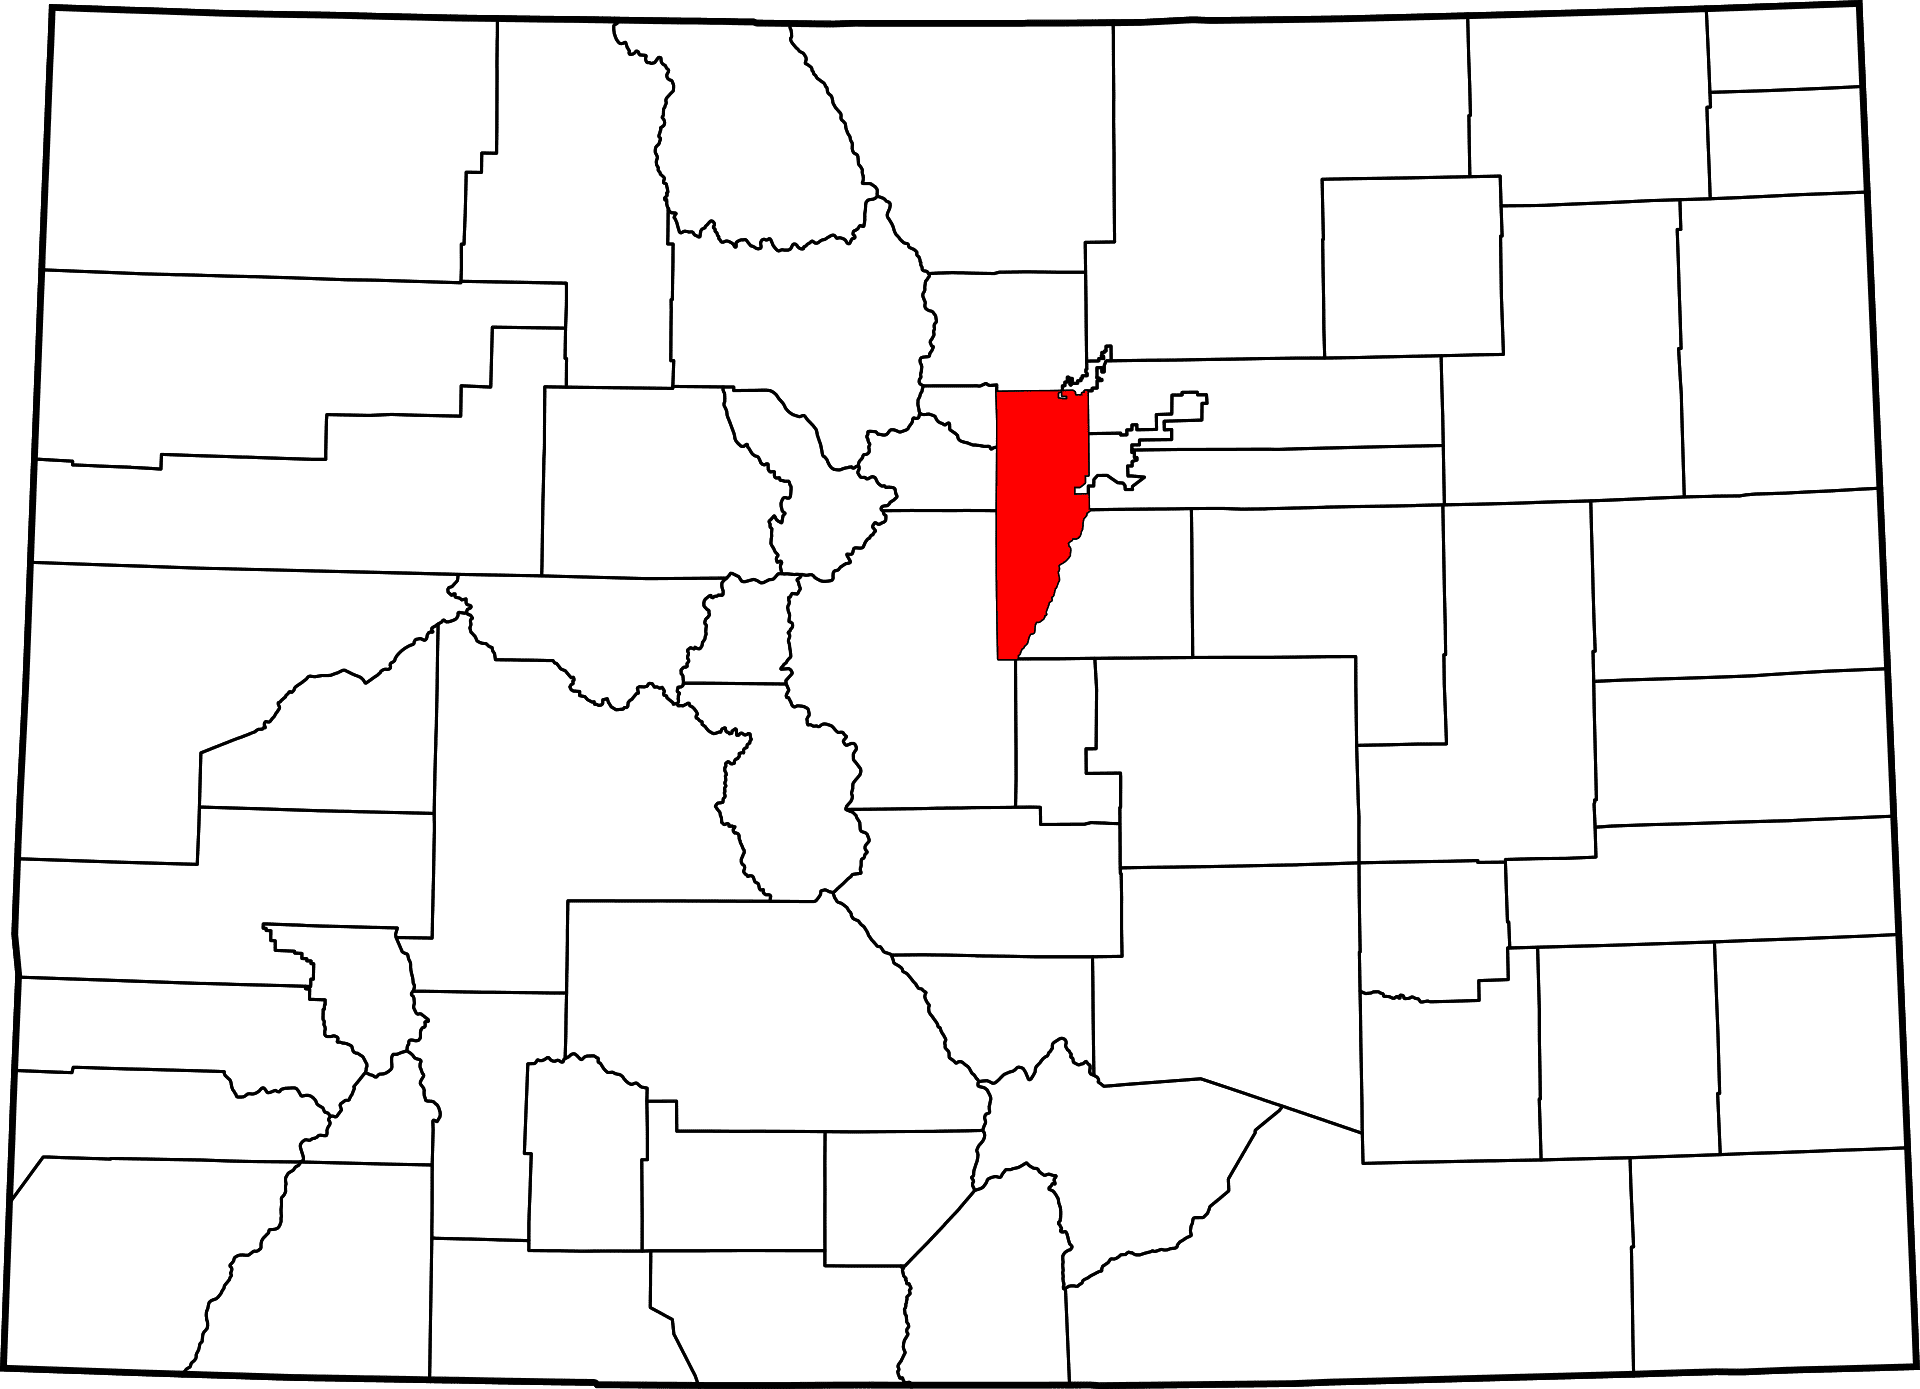 muslim singles in clear creek county Clear creek county was one of the original 17 counties created by the colorado legislature on 1 november 1861, and is one of only two counties (along with gilpin) to have persisted with its original boundaries unchanged.